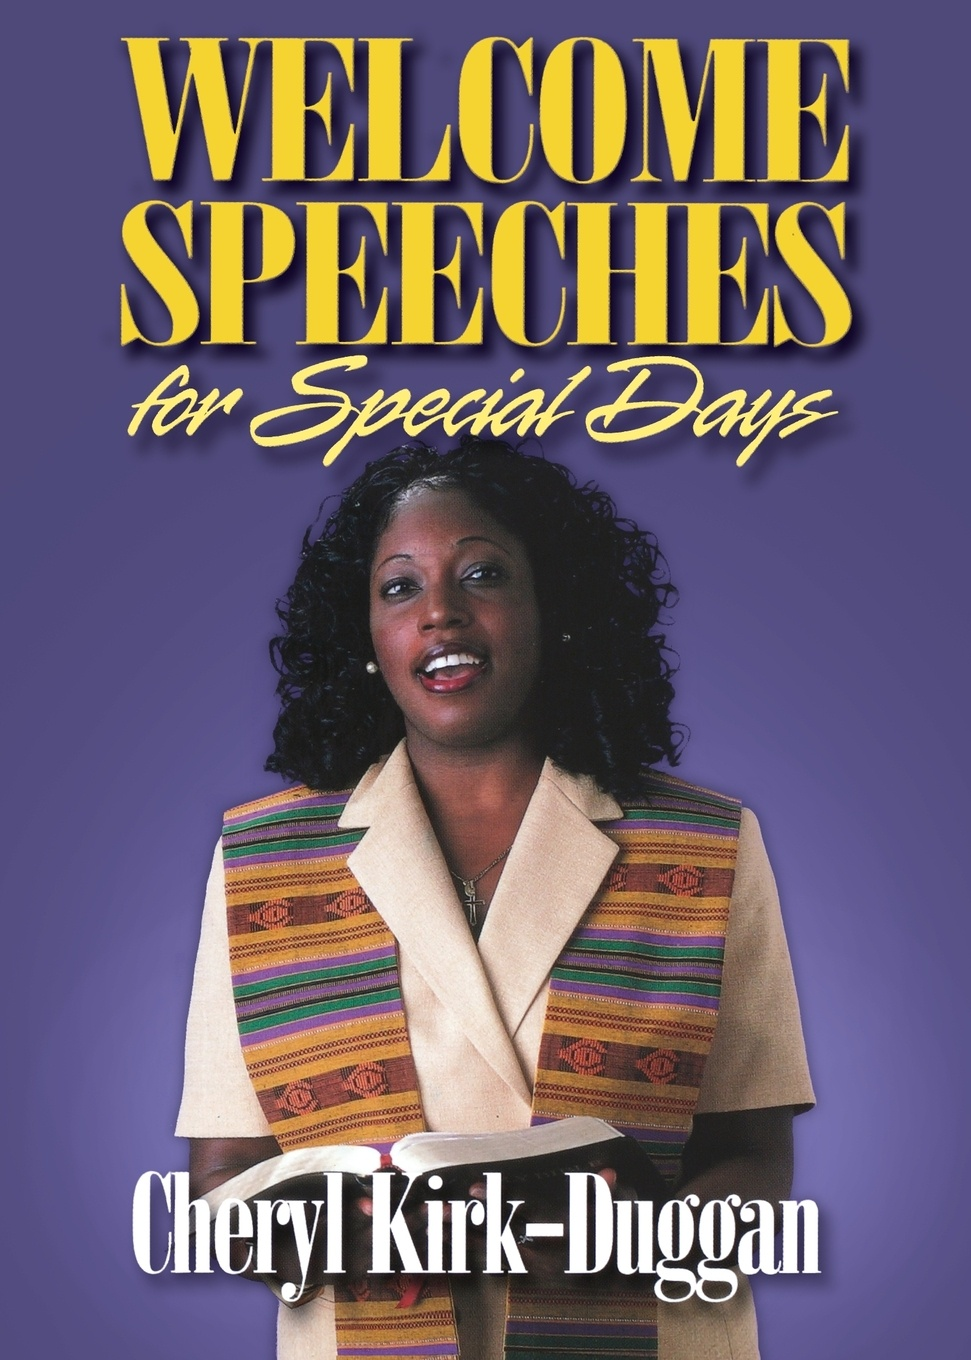 Cheryl A. Kirk-Duggan Welcome Speeches for Special Days